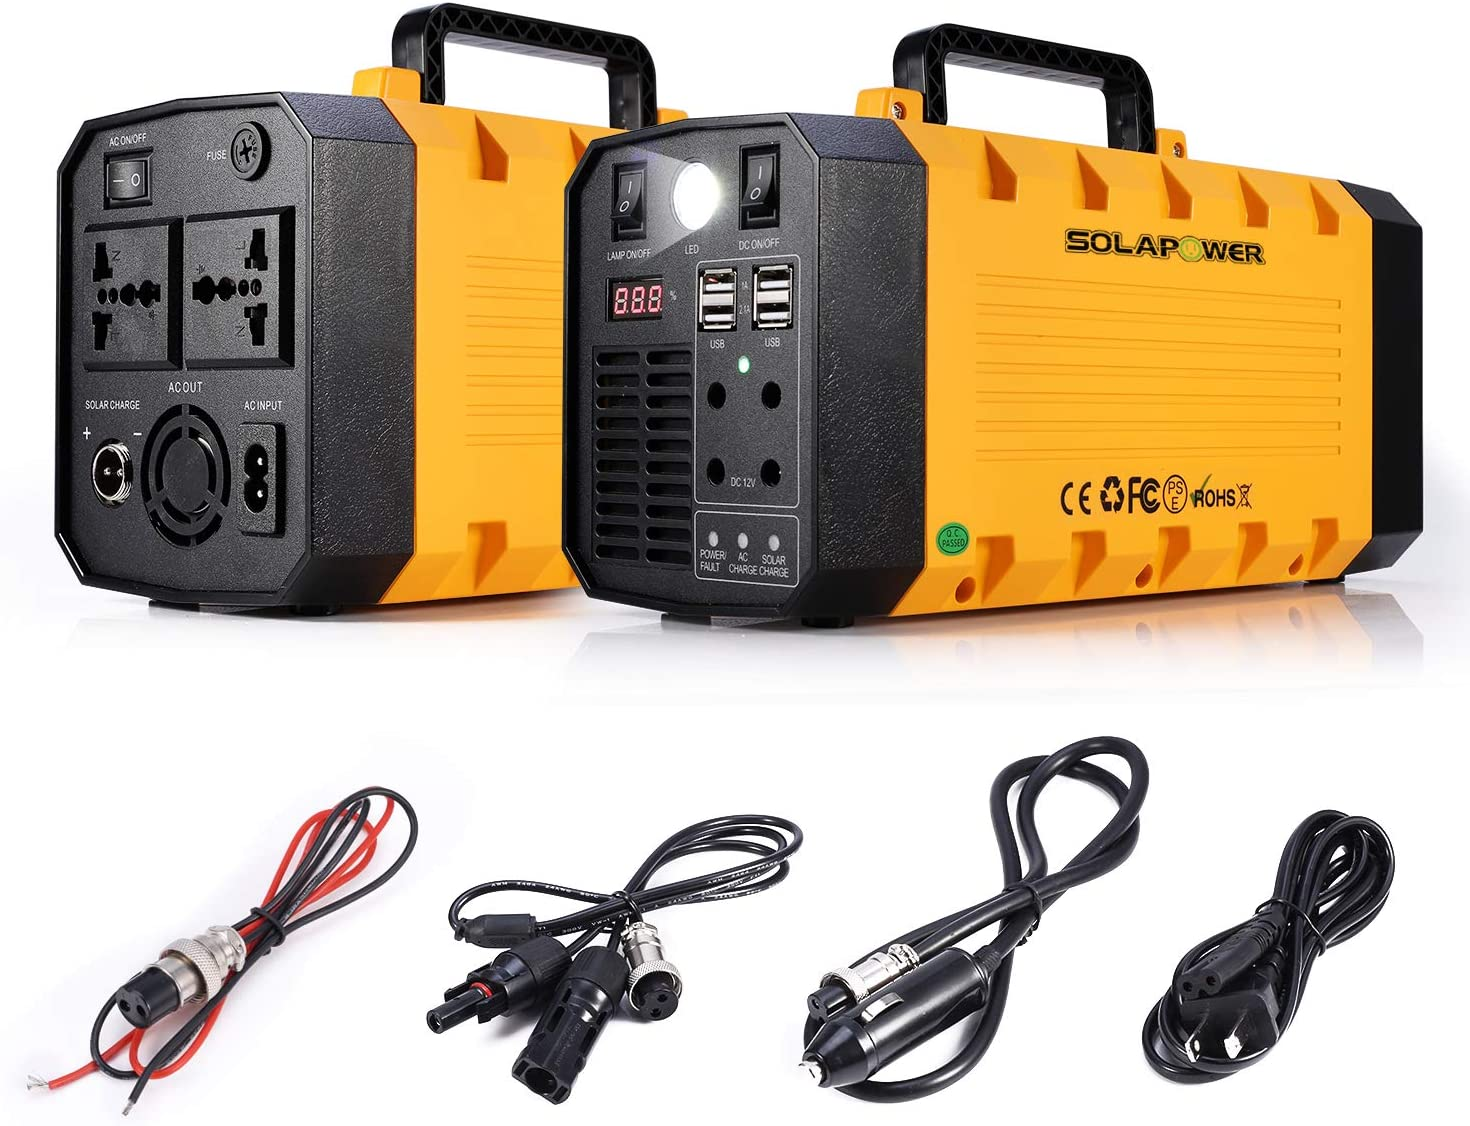 SOLARPOWER 500W Generator Portable Power Station- UPS 500W Continuous 1000w Peak -Lithium Battery Inverter with 110V AC Outlet, 4 DC 12V Port, 4 USB, Solar Generators for Camping CPAP Emergency Home